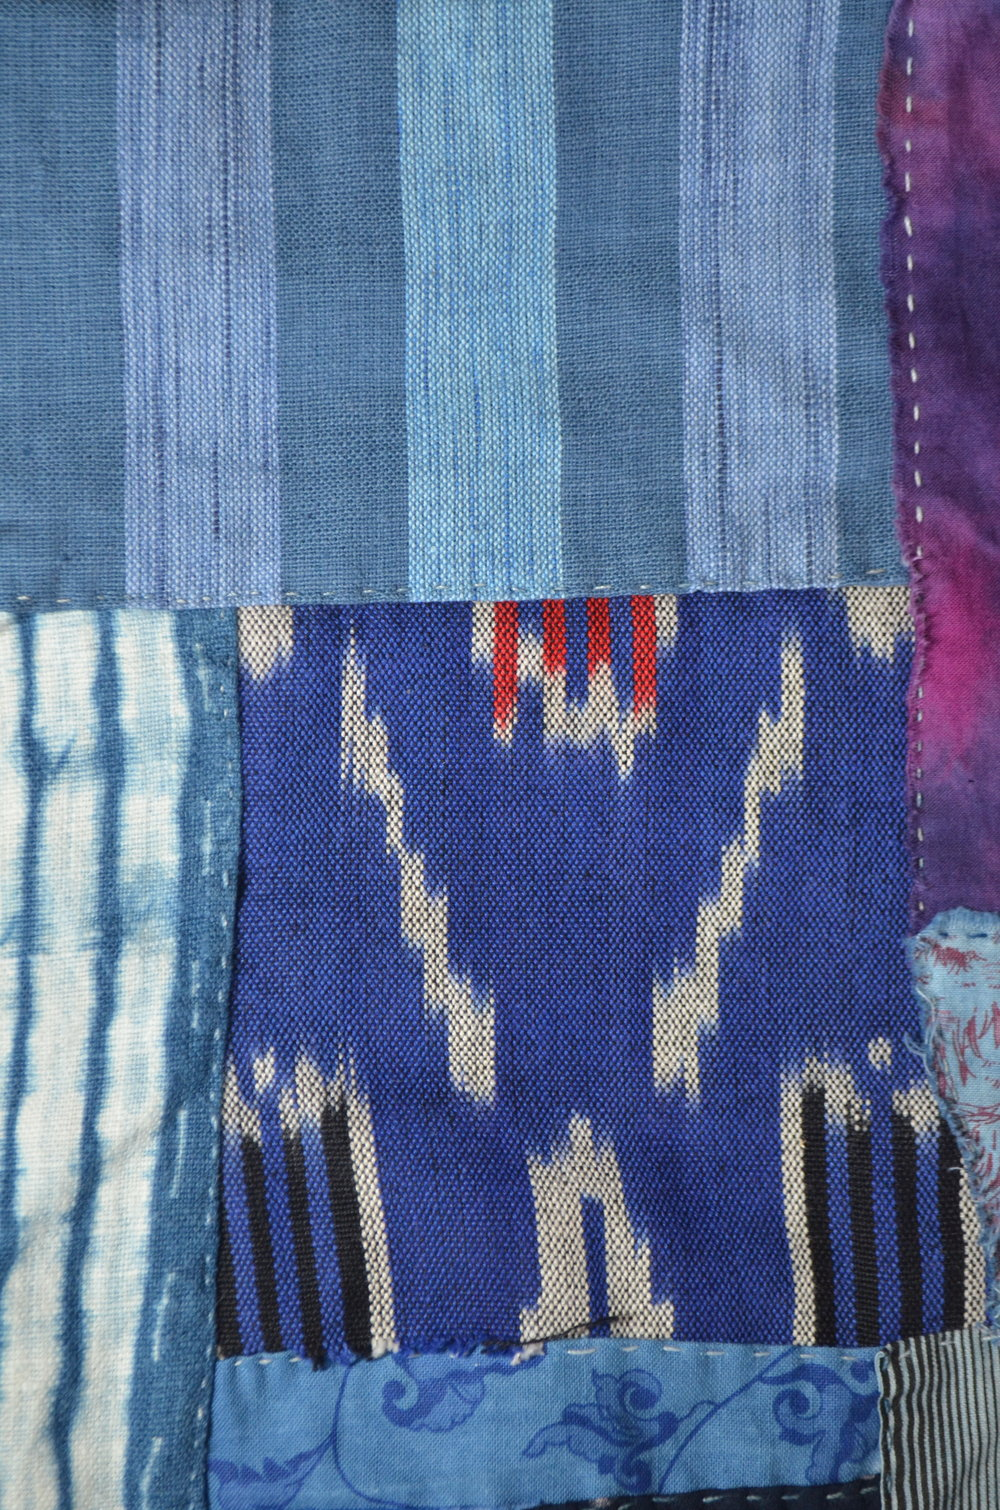 scraps of ikat, indigo shibori and stitched in the boro manner